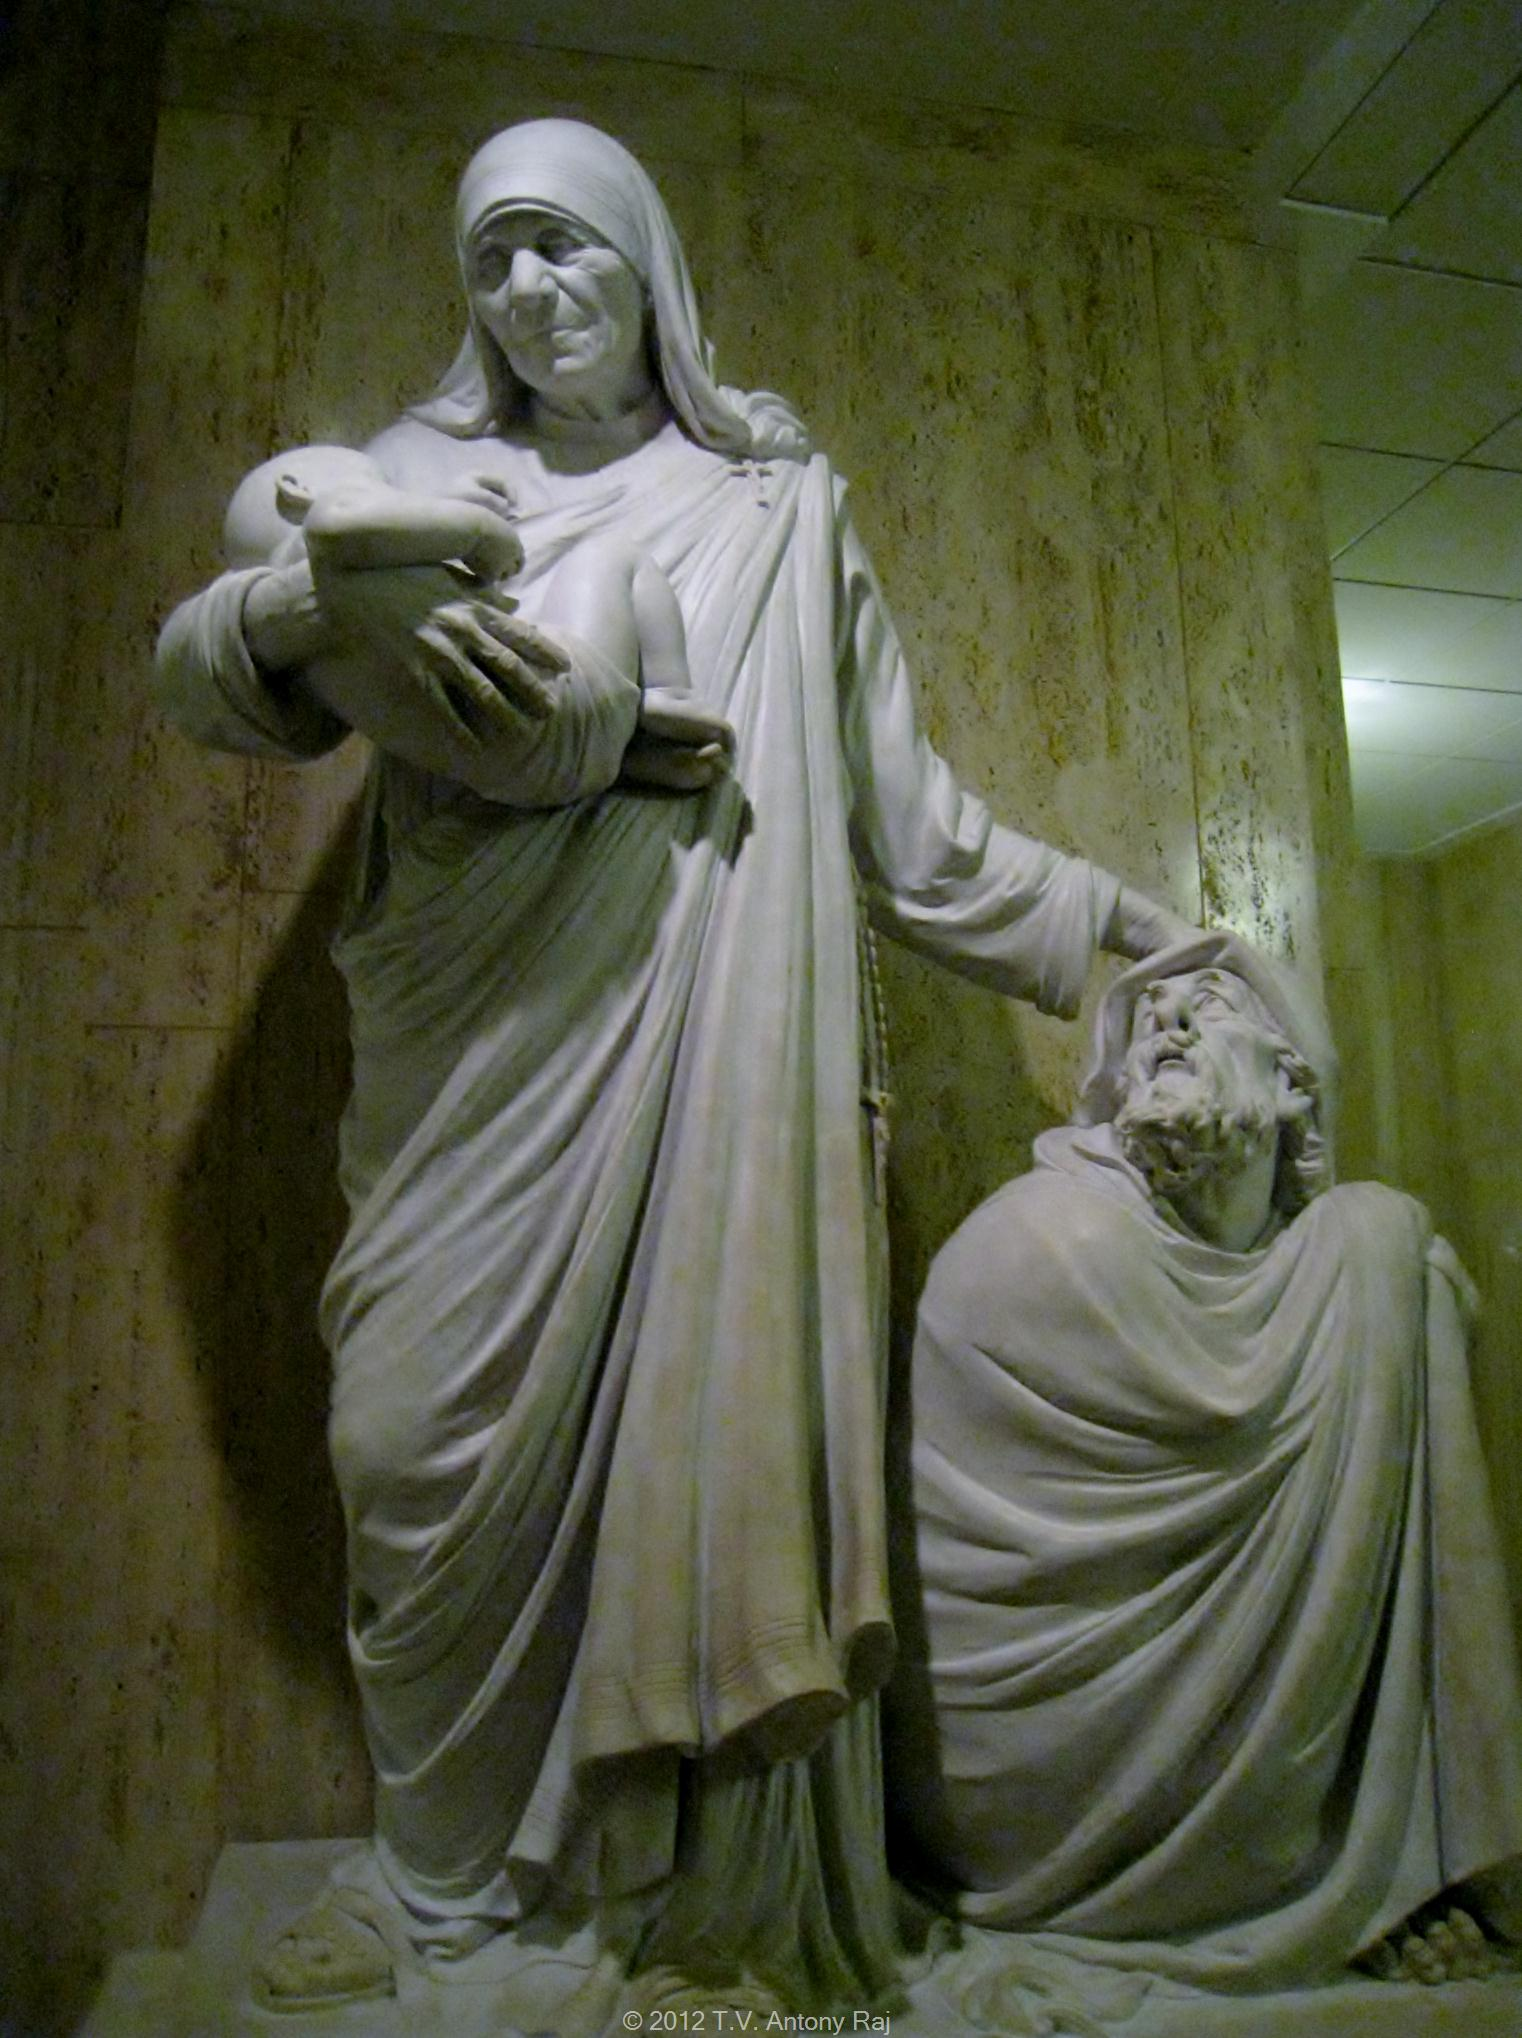 statue-of-saint-teresa-in-the-national-shrine-washington-dc-photo-t-v-antony-raj.jpg